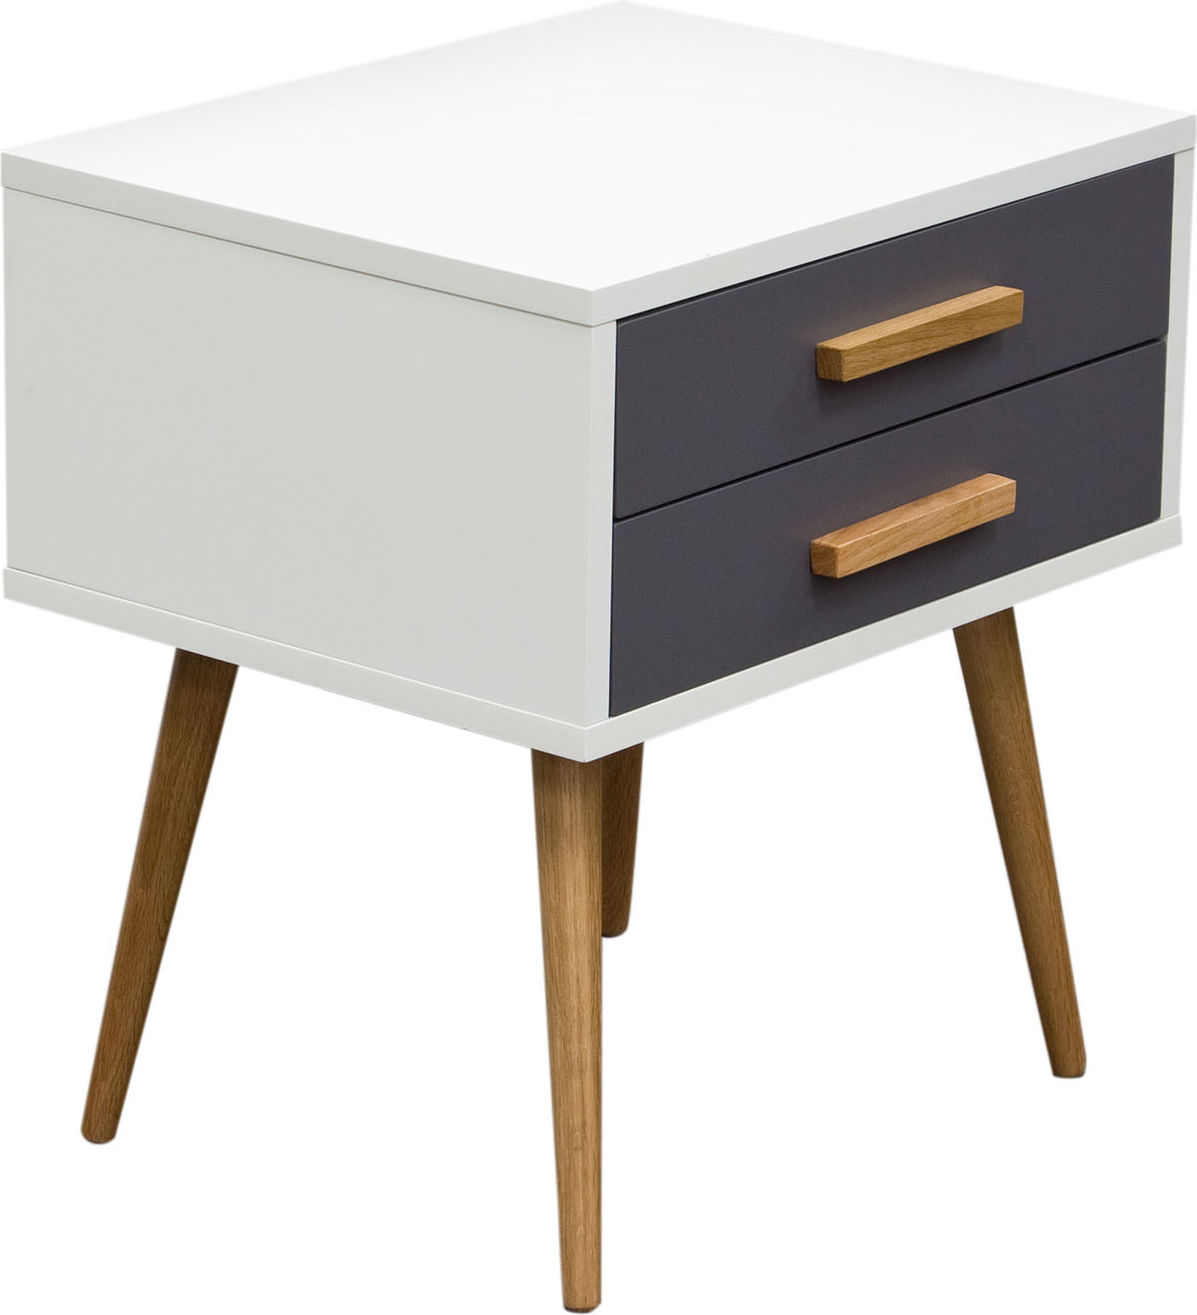 trunk end table target probably terrific great white oak accent tables with drawers tangent drawer tangentetwhgr top can you paint formica baker dining room furniture ethan allen